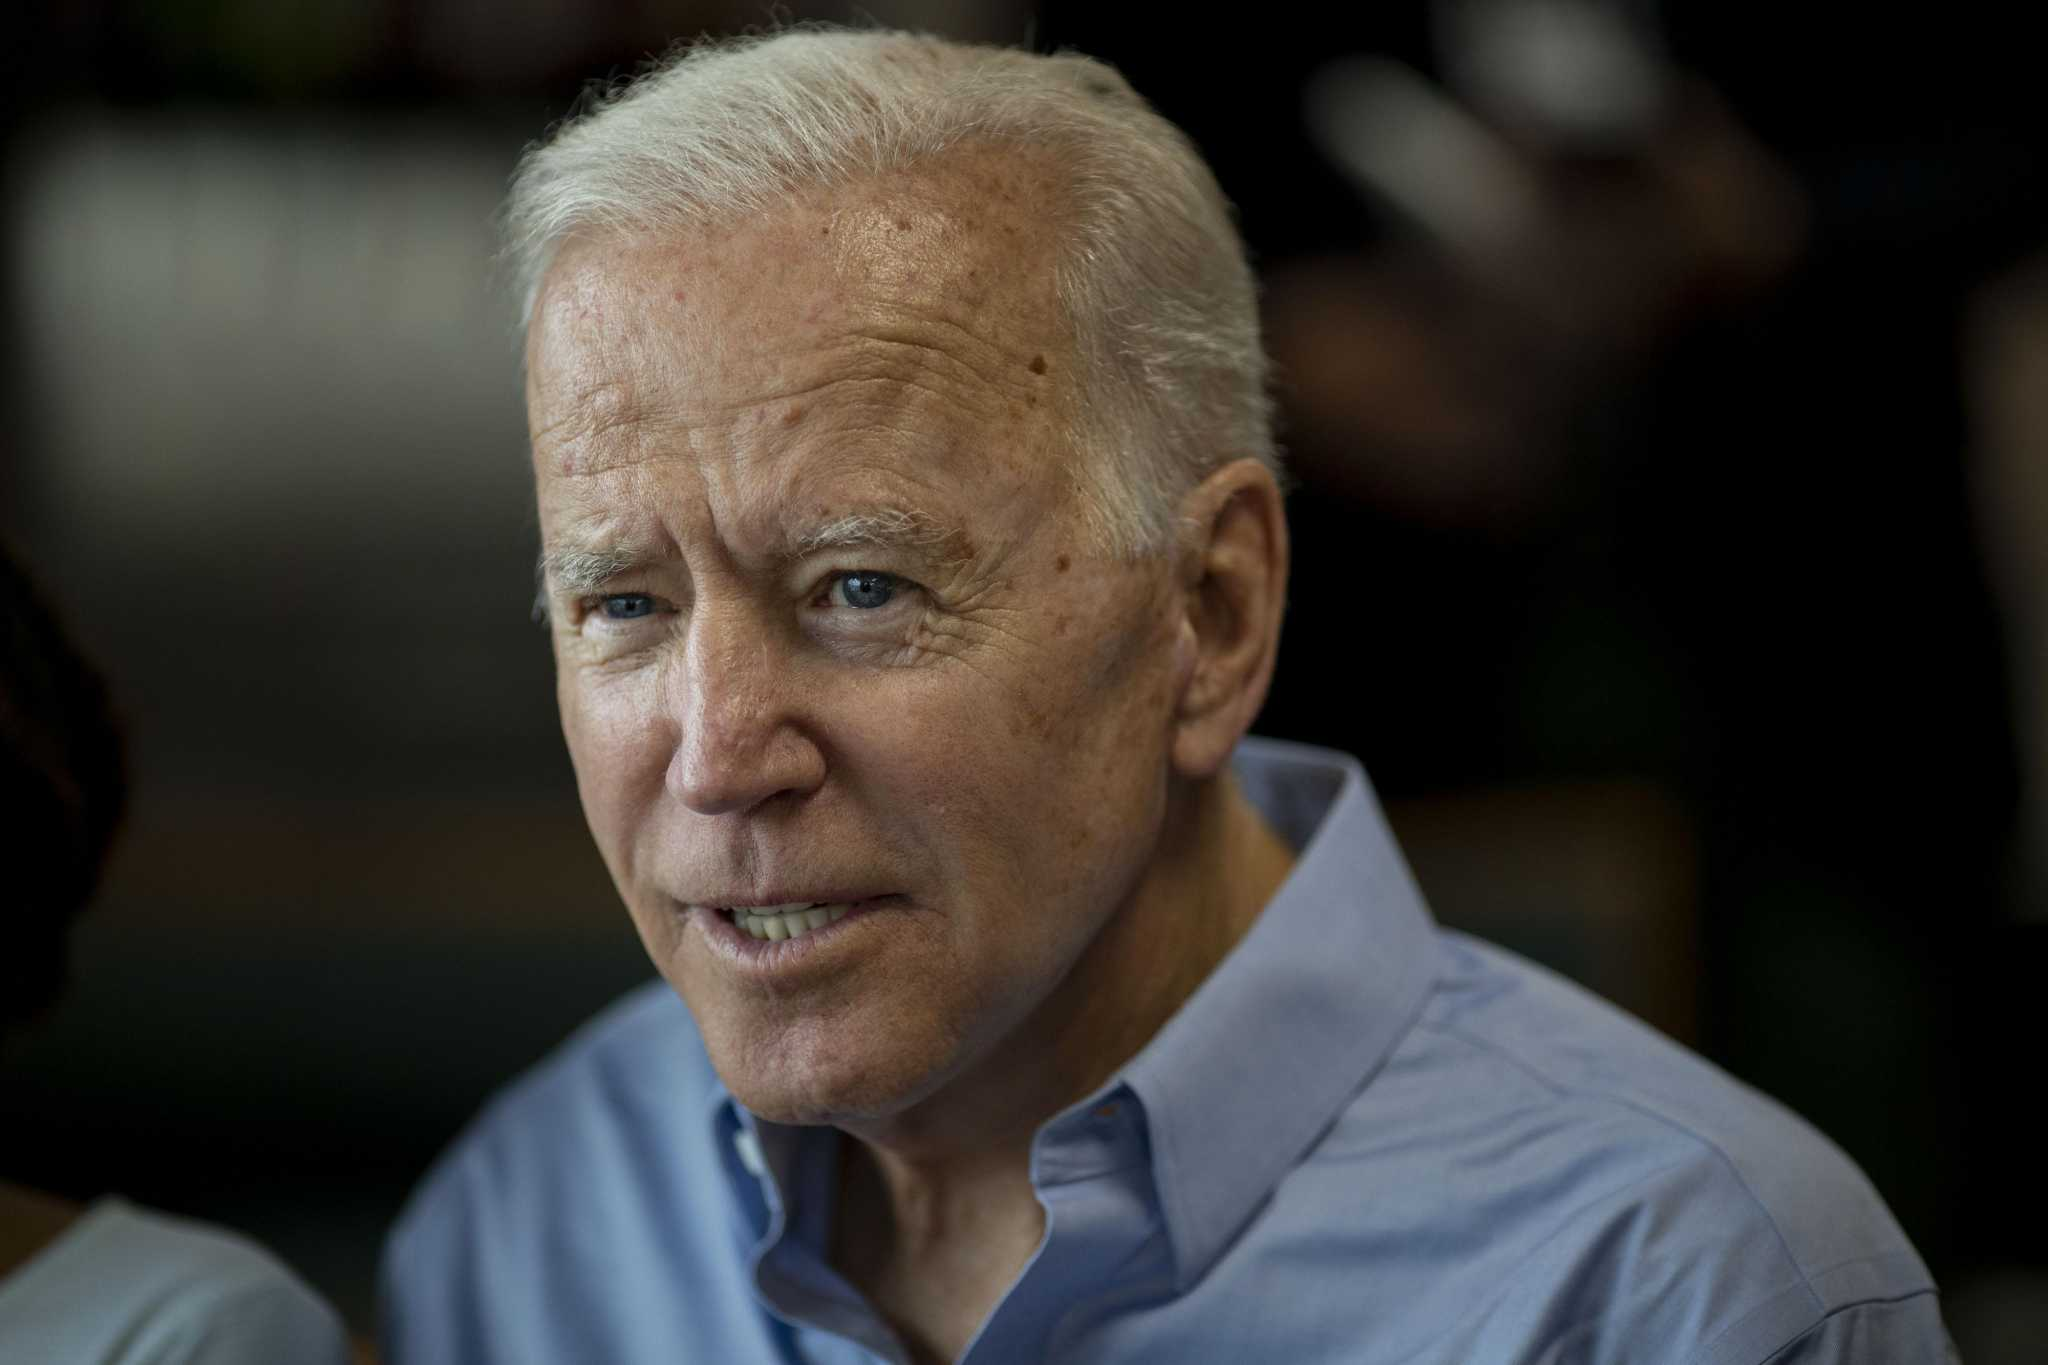 COMMENTARY: Joe Biden is Donald Trump